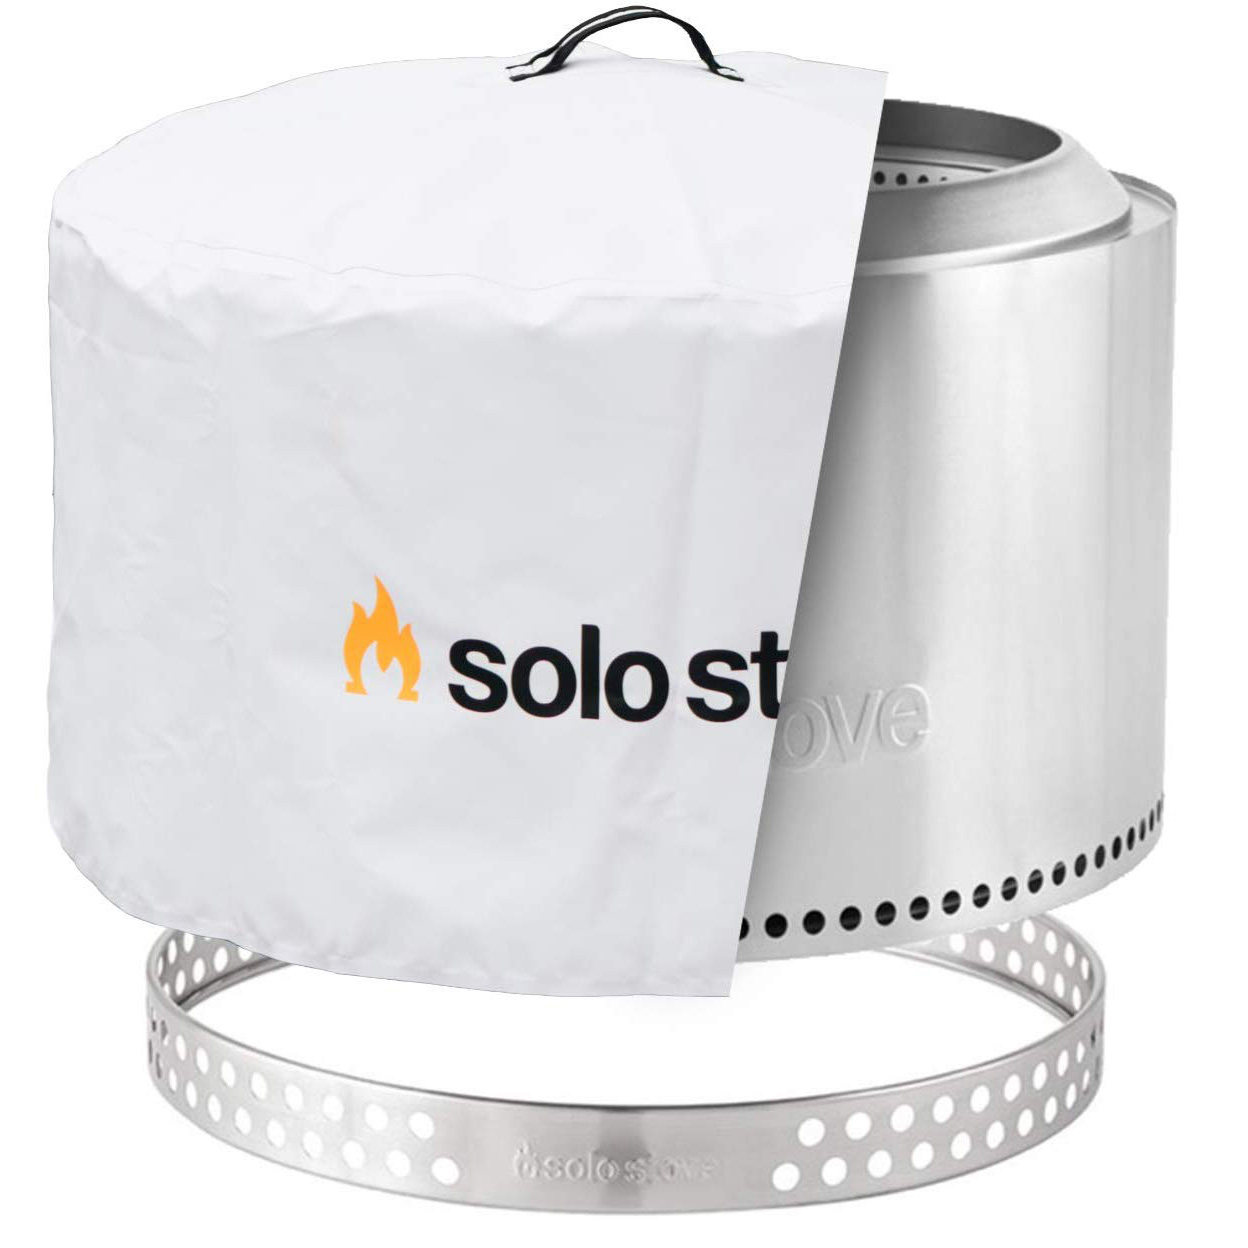 Solo Stove Yukon Fire Pit Bundle With Stand And